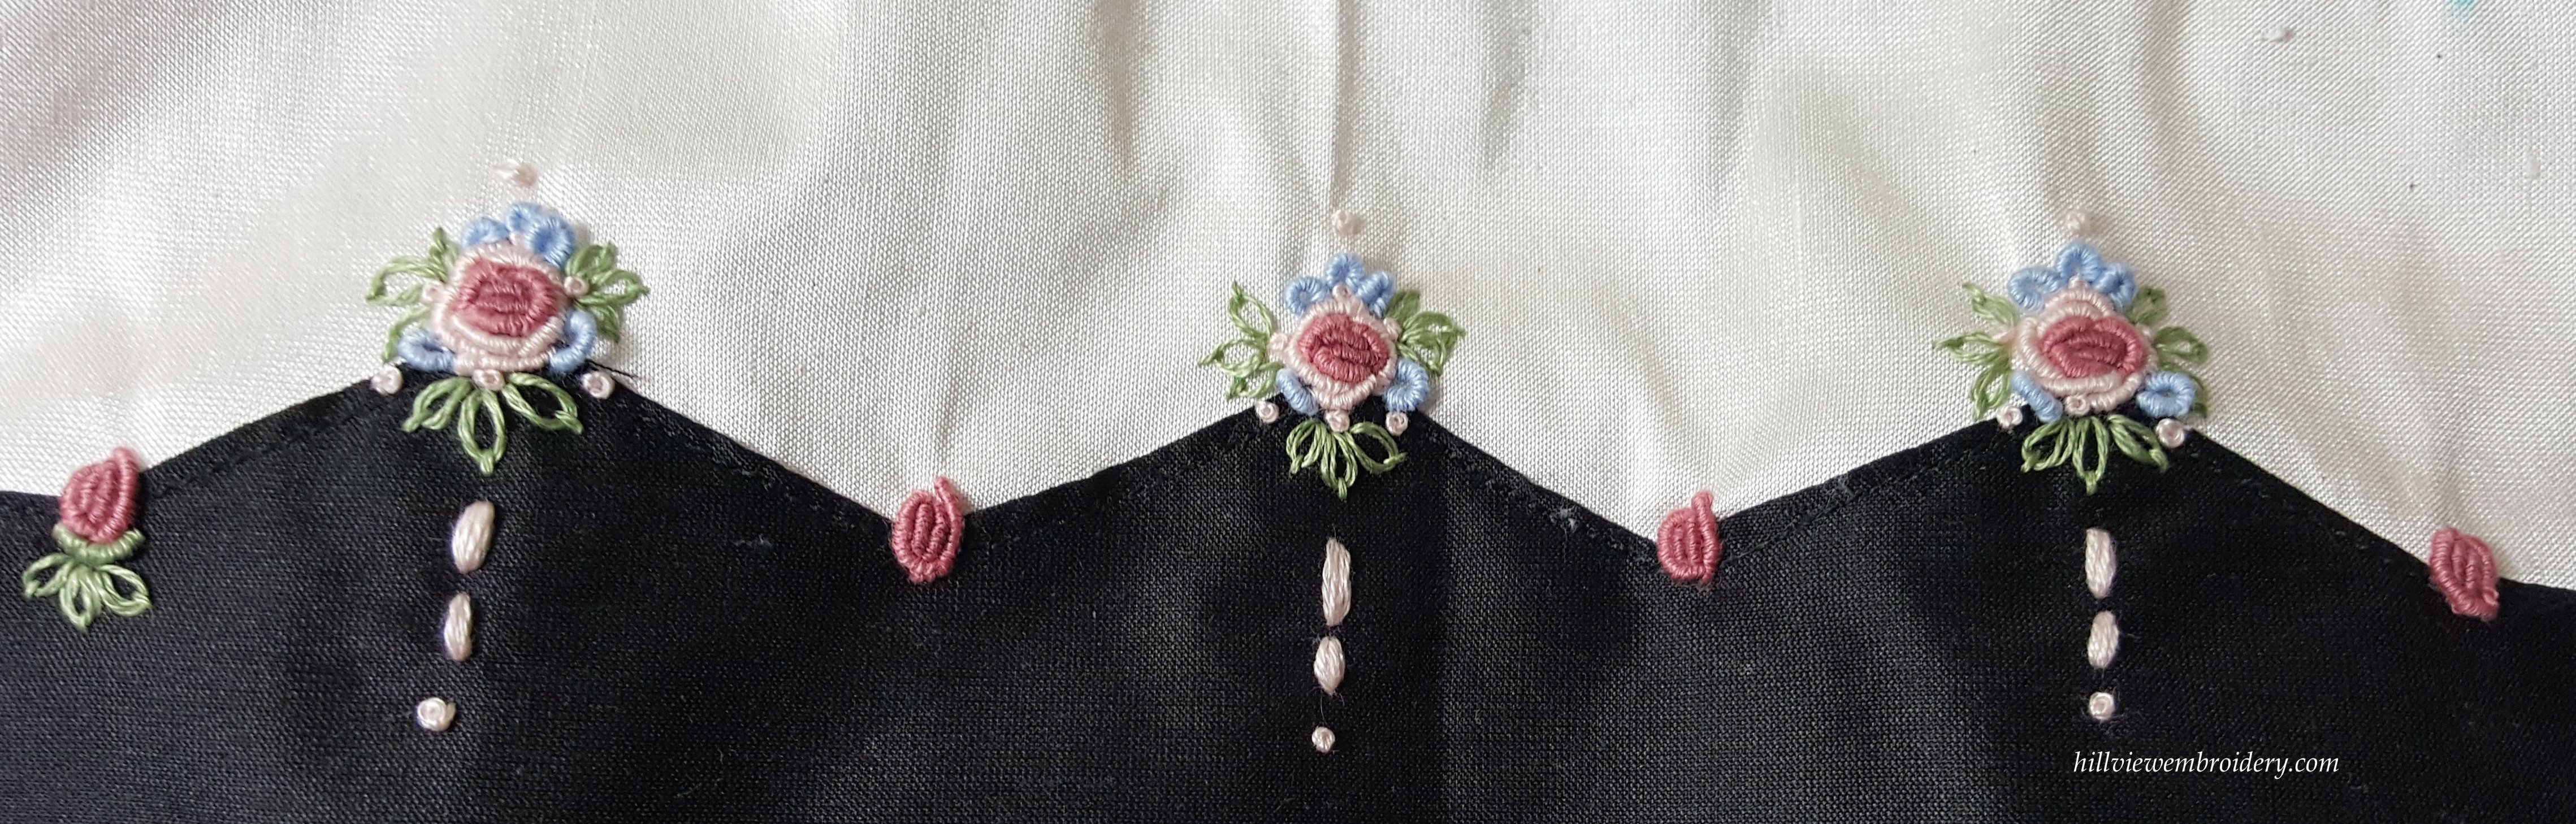 embroidery progress.jpg